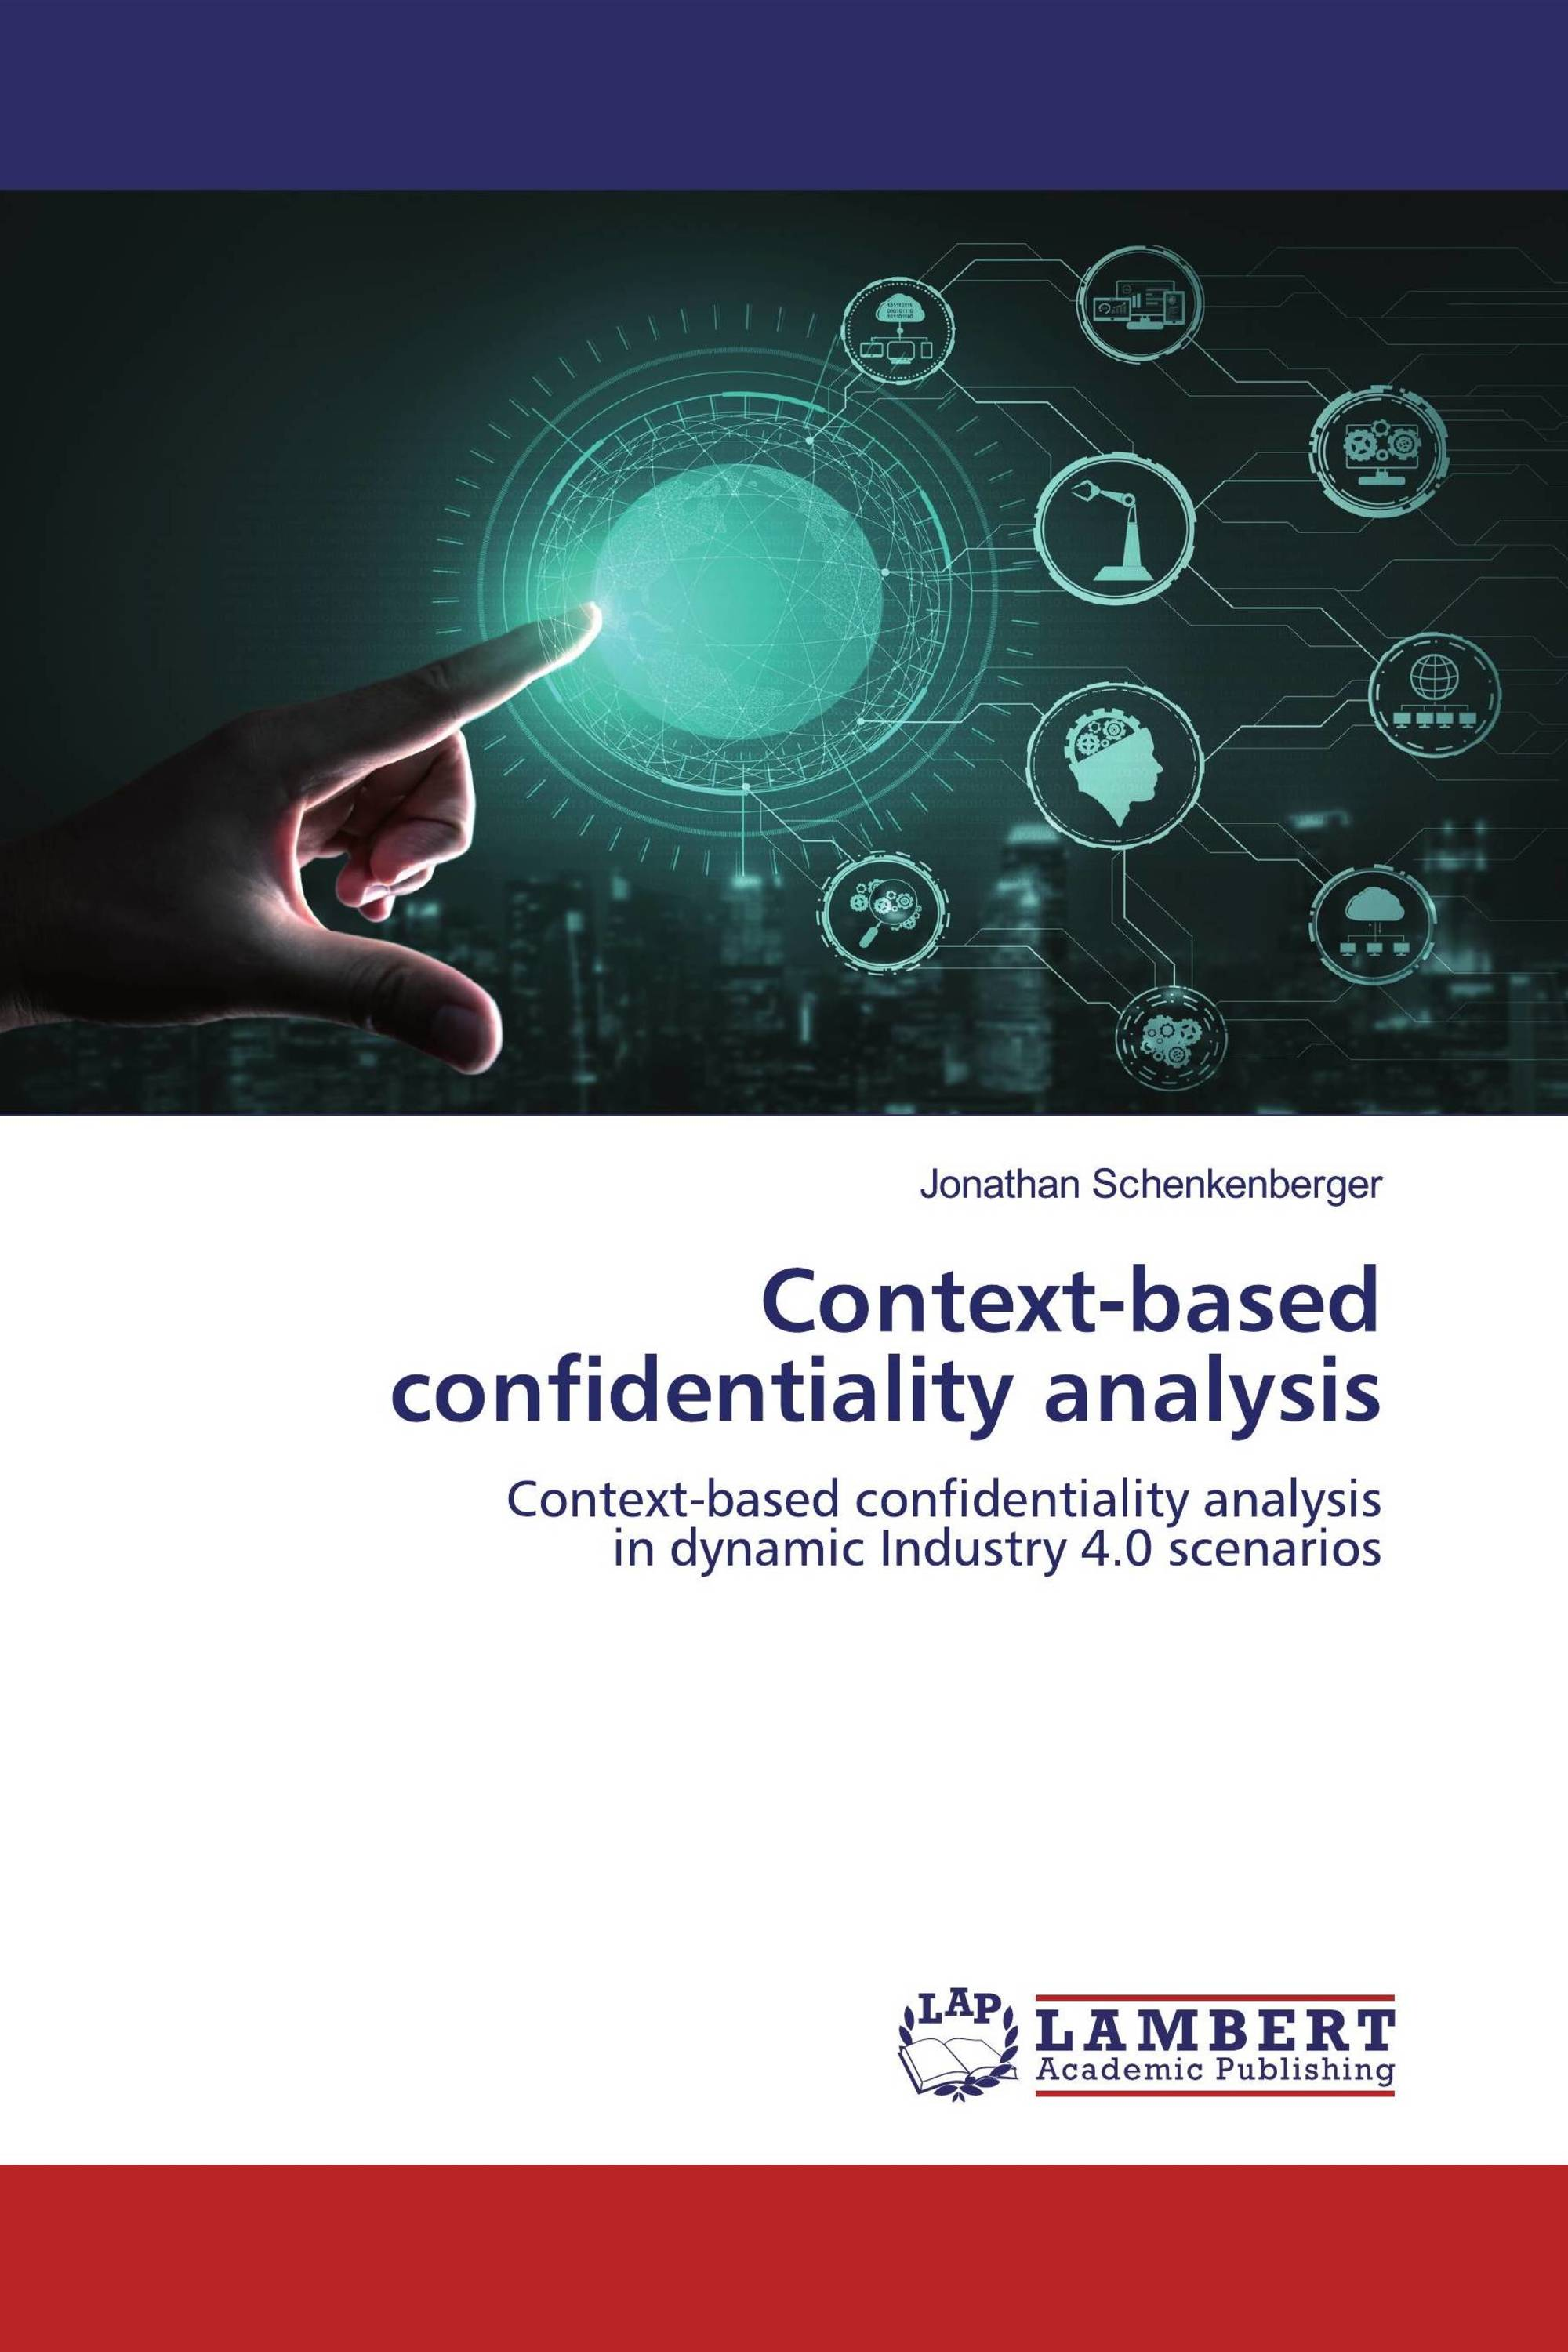 Context-based confidentiality analysis